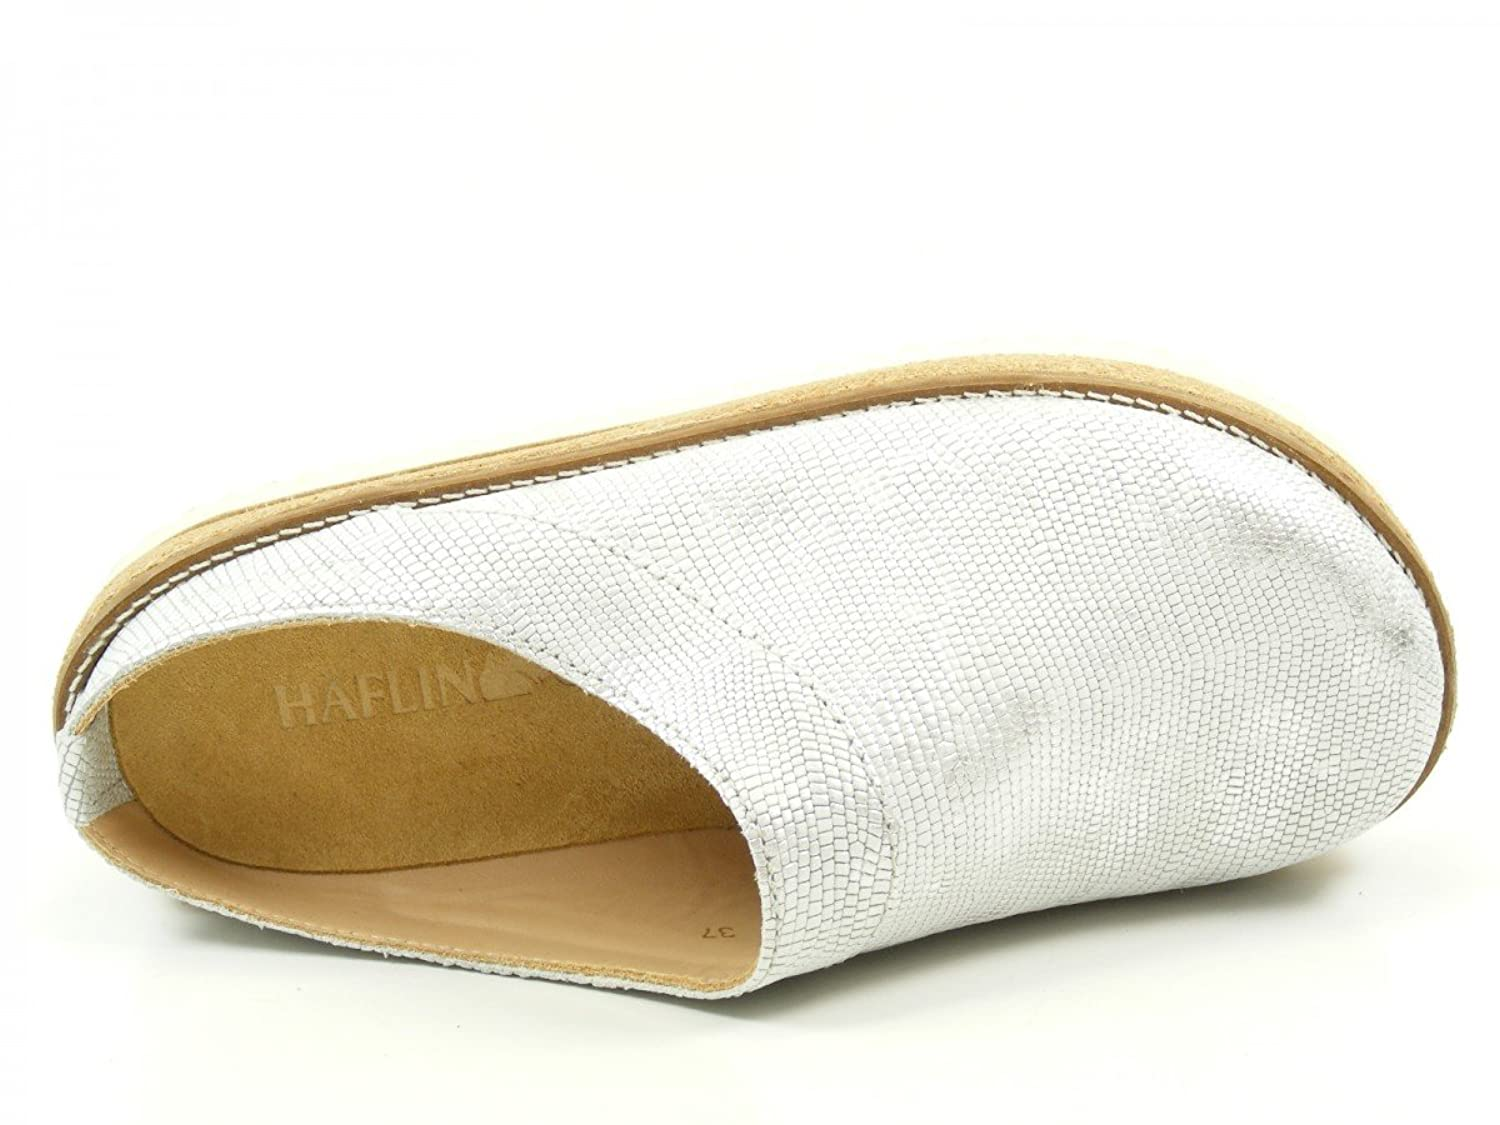 Haflinger 818070 Travel-Clog Neo Unisex Clogs, schuhgröße_1:41  EU;Farbe:Silver: Amazon.co.uk: Shoes & Bags